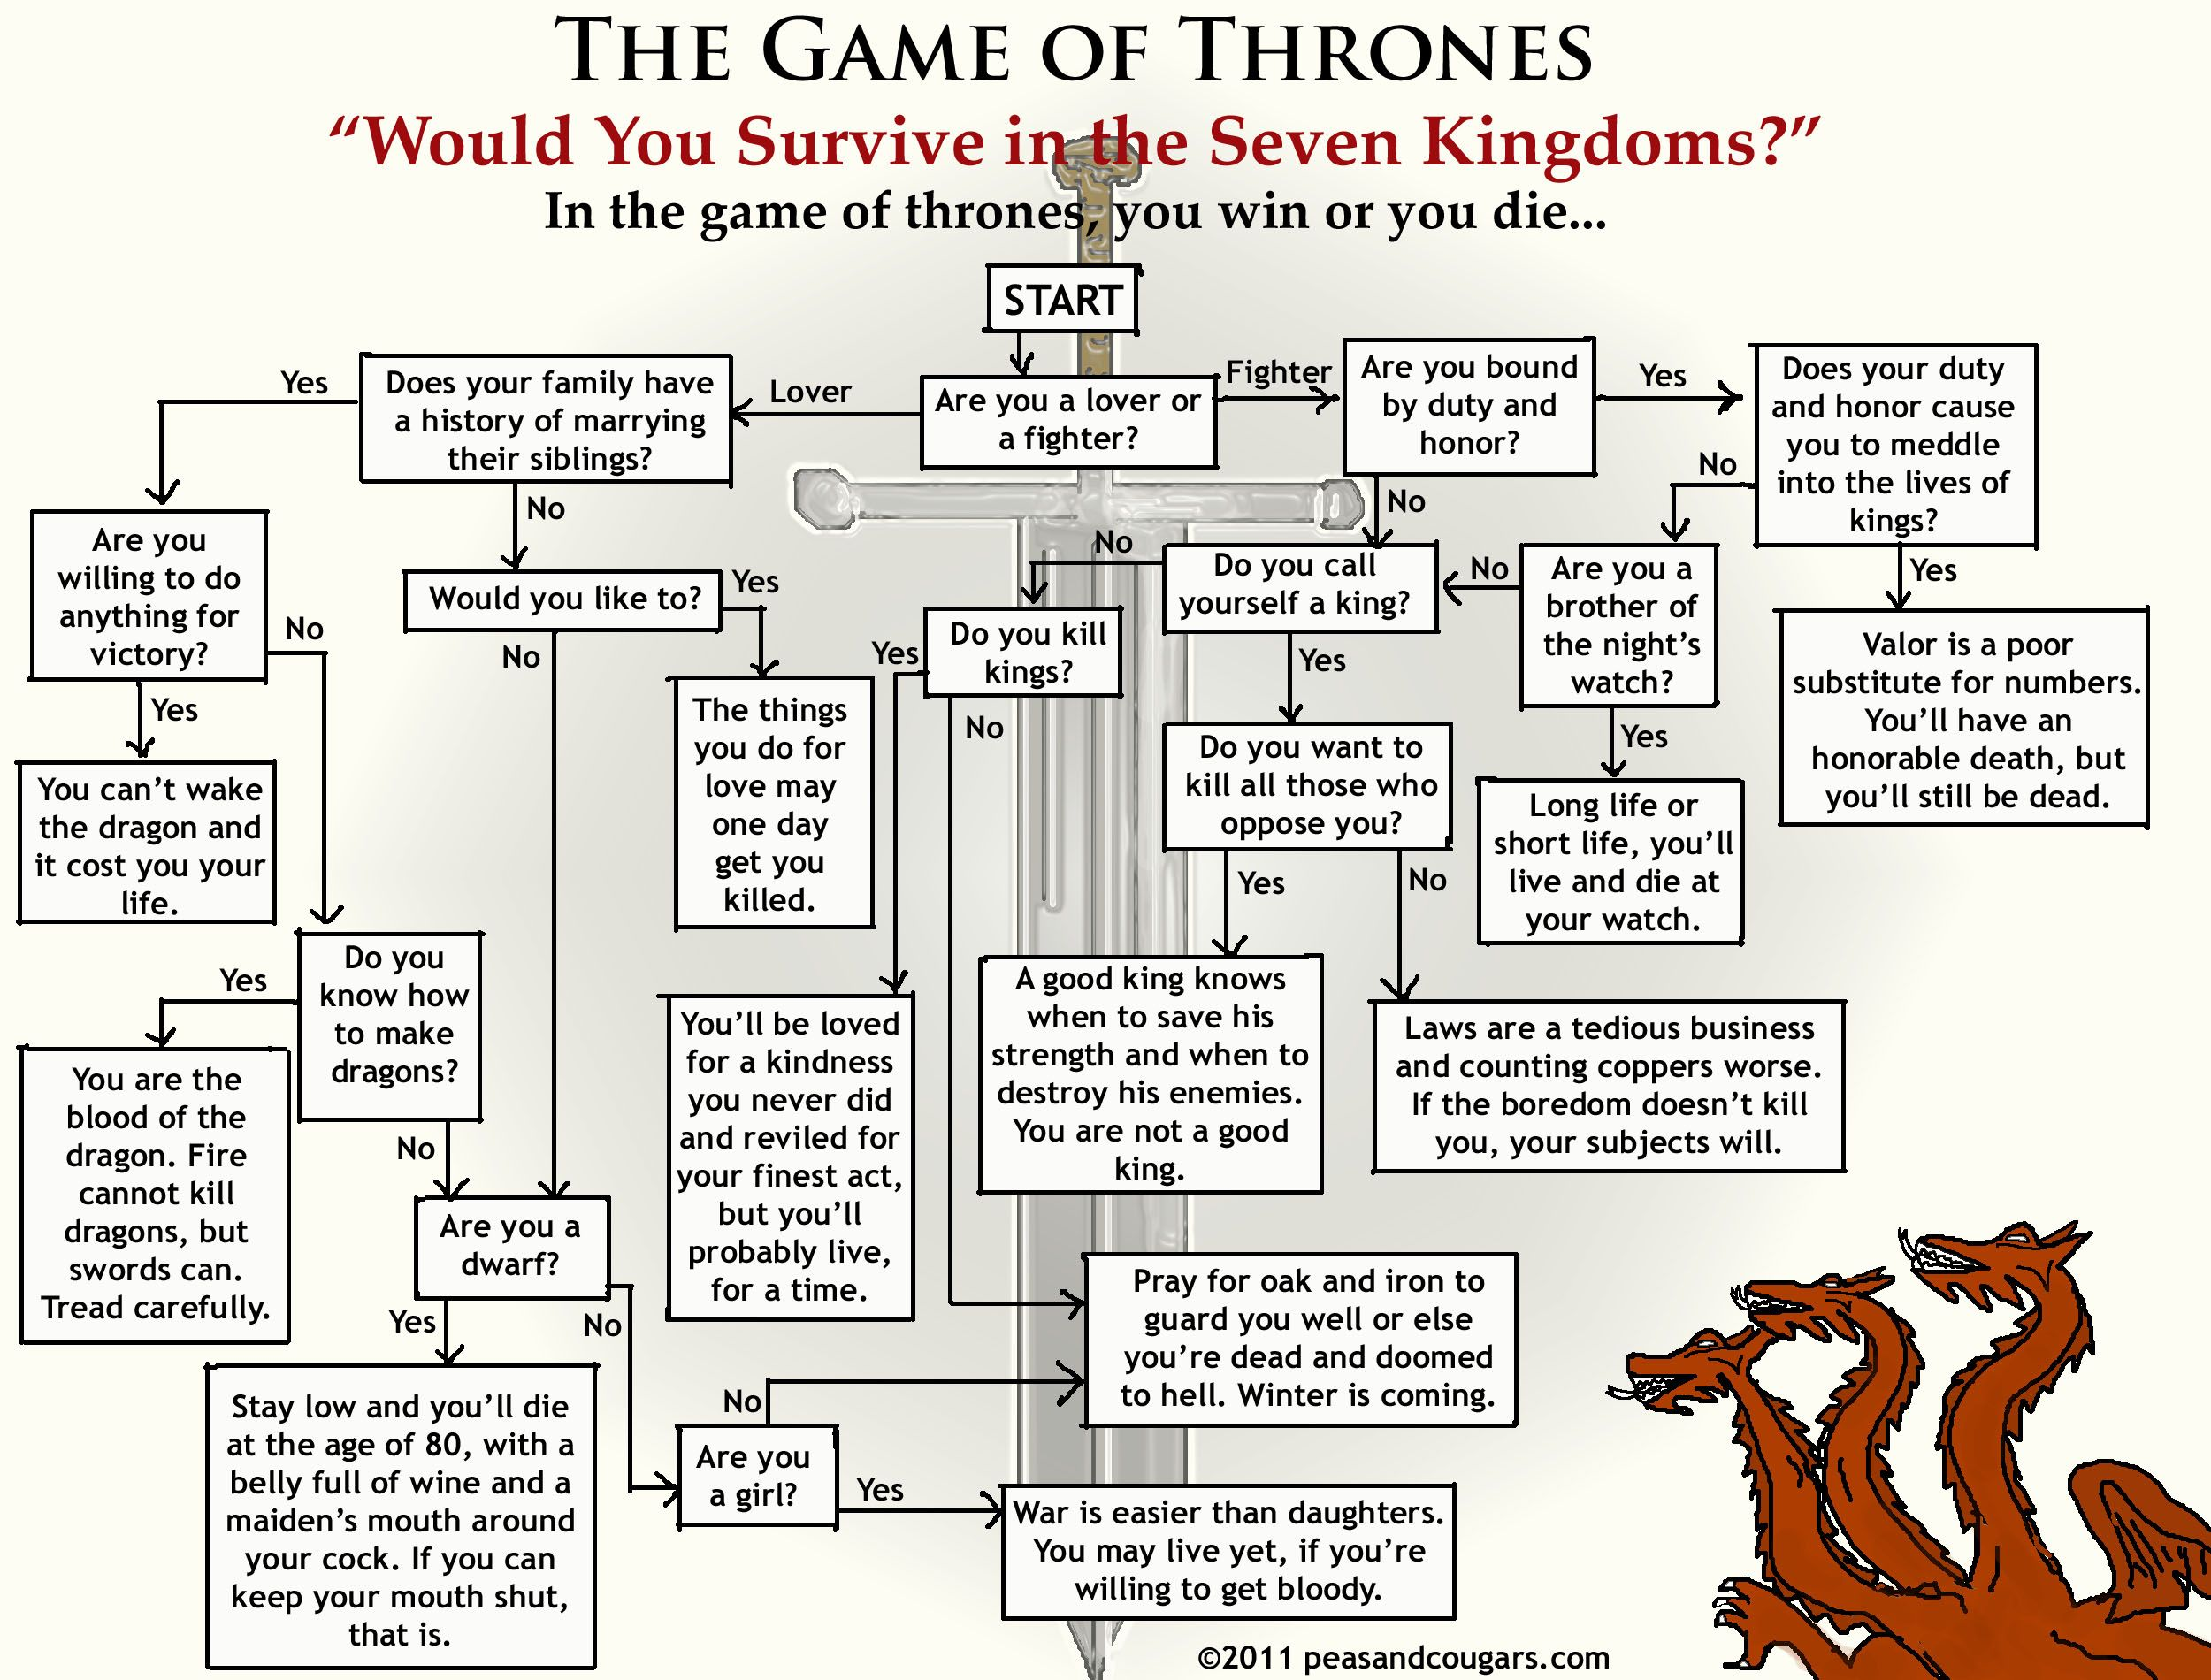 game of thrones character map - Google Search | Game of ... Game Of Thrones Map Google on google map skins, google map arrow, google map dallas, google map scandal, google map rome, google map atlantis, google map nashville, google map fargo, google map zoo, google map united states,